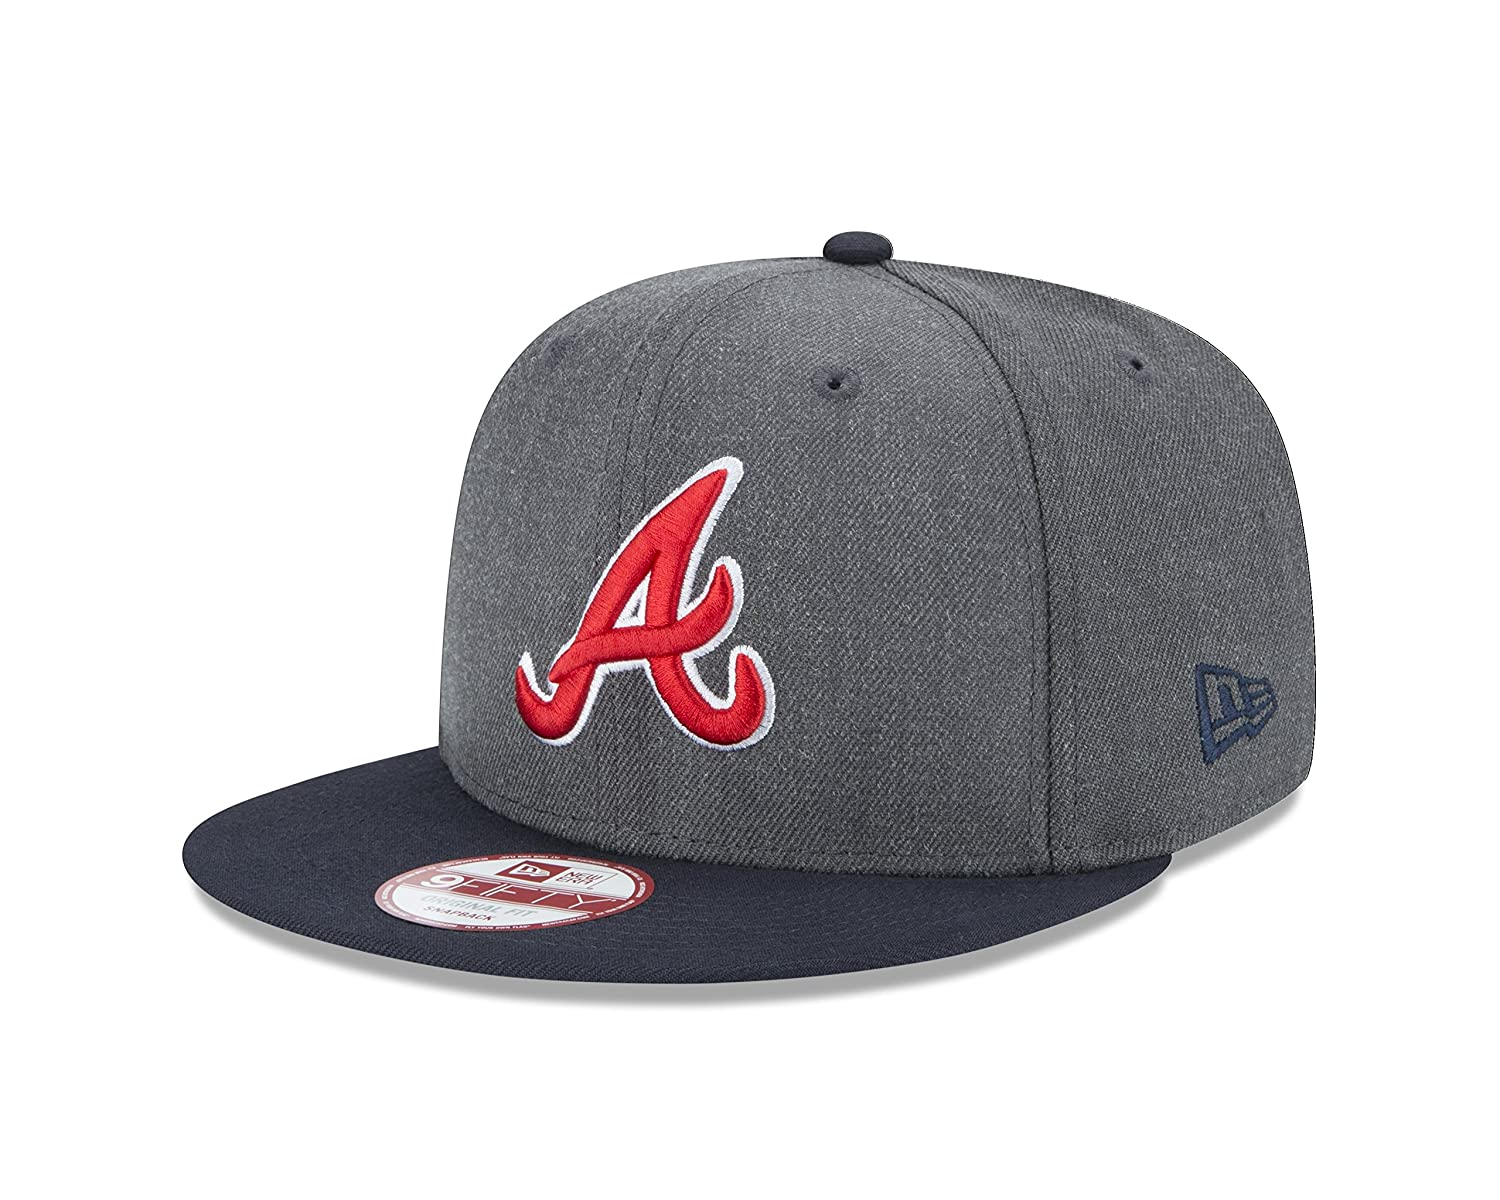 92f6865e206 Amazon.com   New Era MLB Atlanta Braves Heather 9Fifty Snapback Cap ...